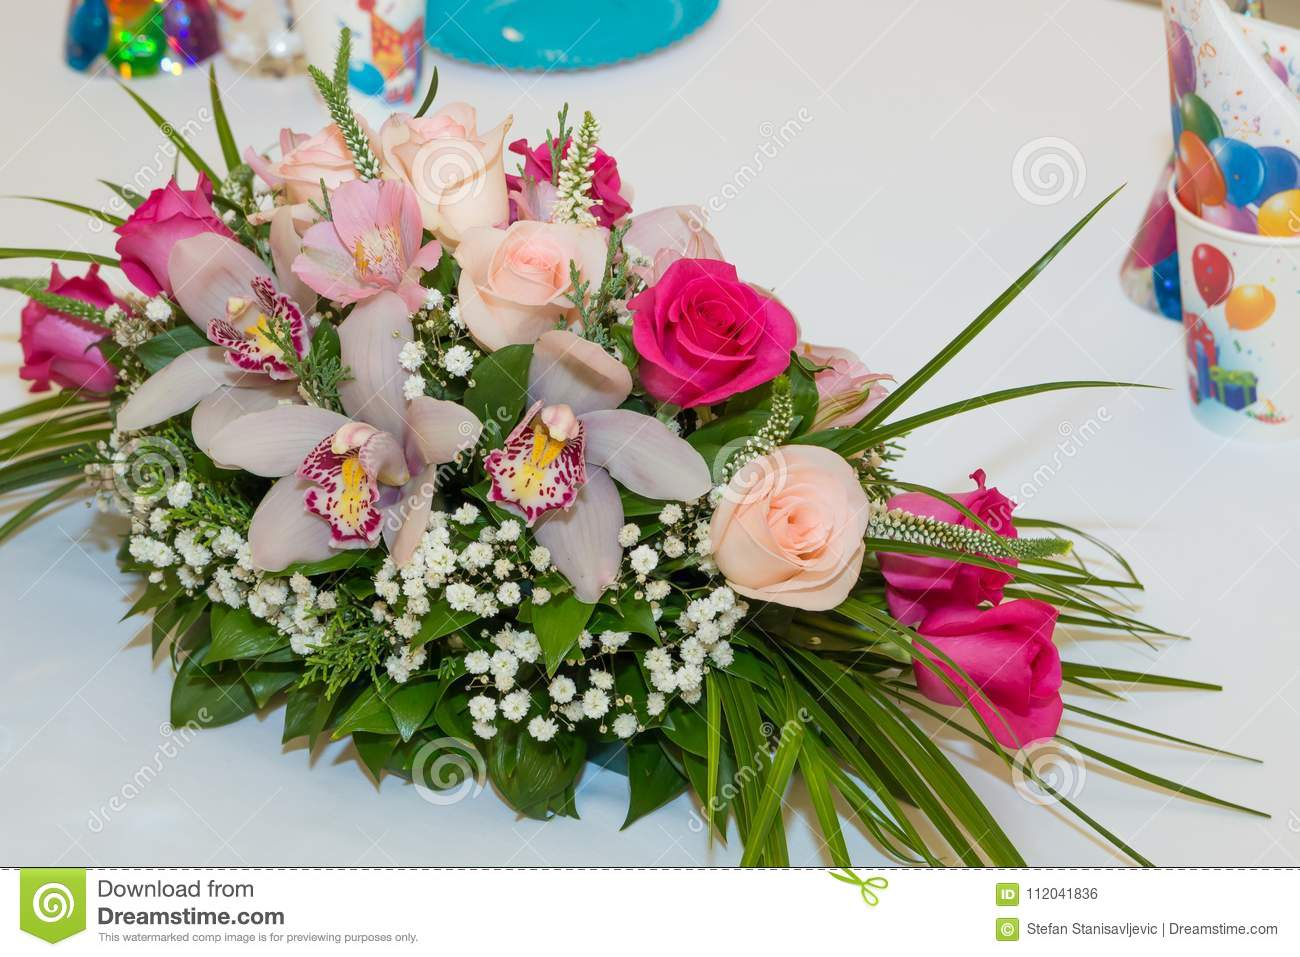 Colorful Birthday Party Table Flowers In Pink And Purple Close Up Restaurant Decoration Or Setting For Celebration